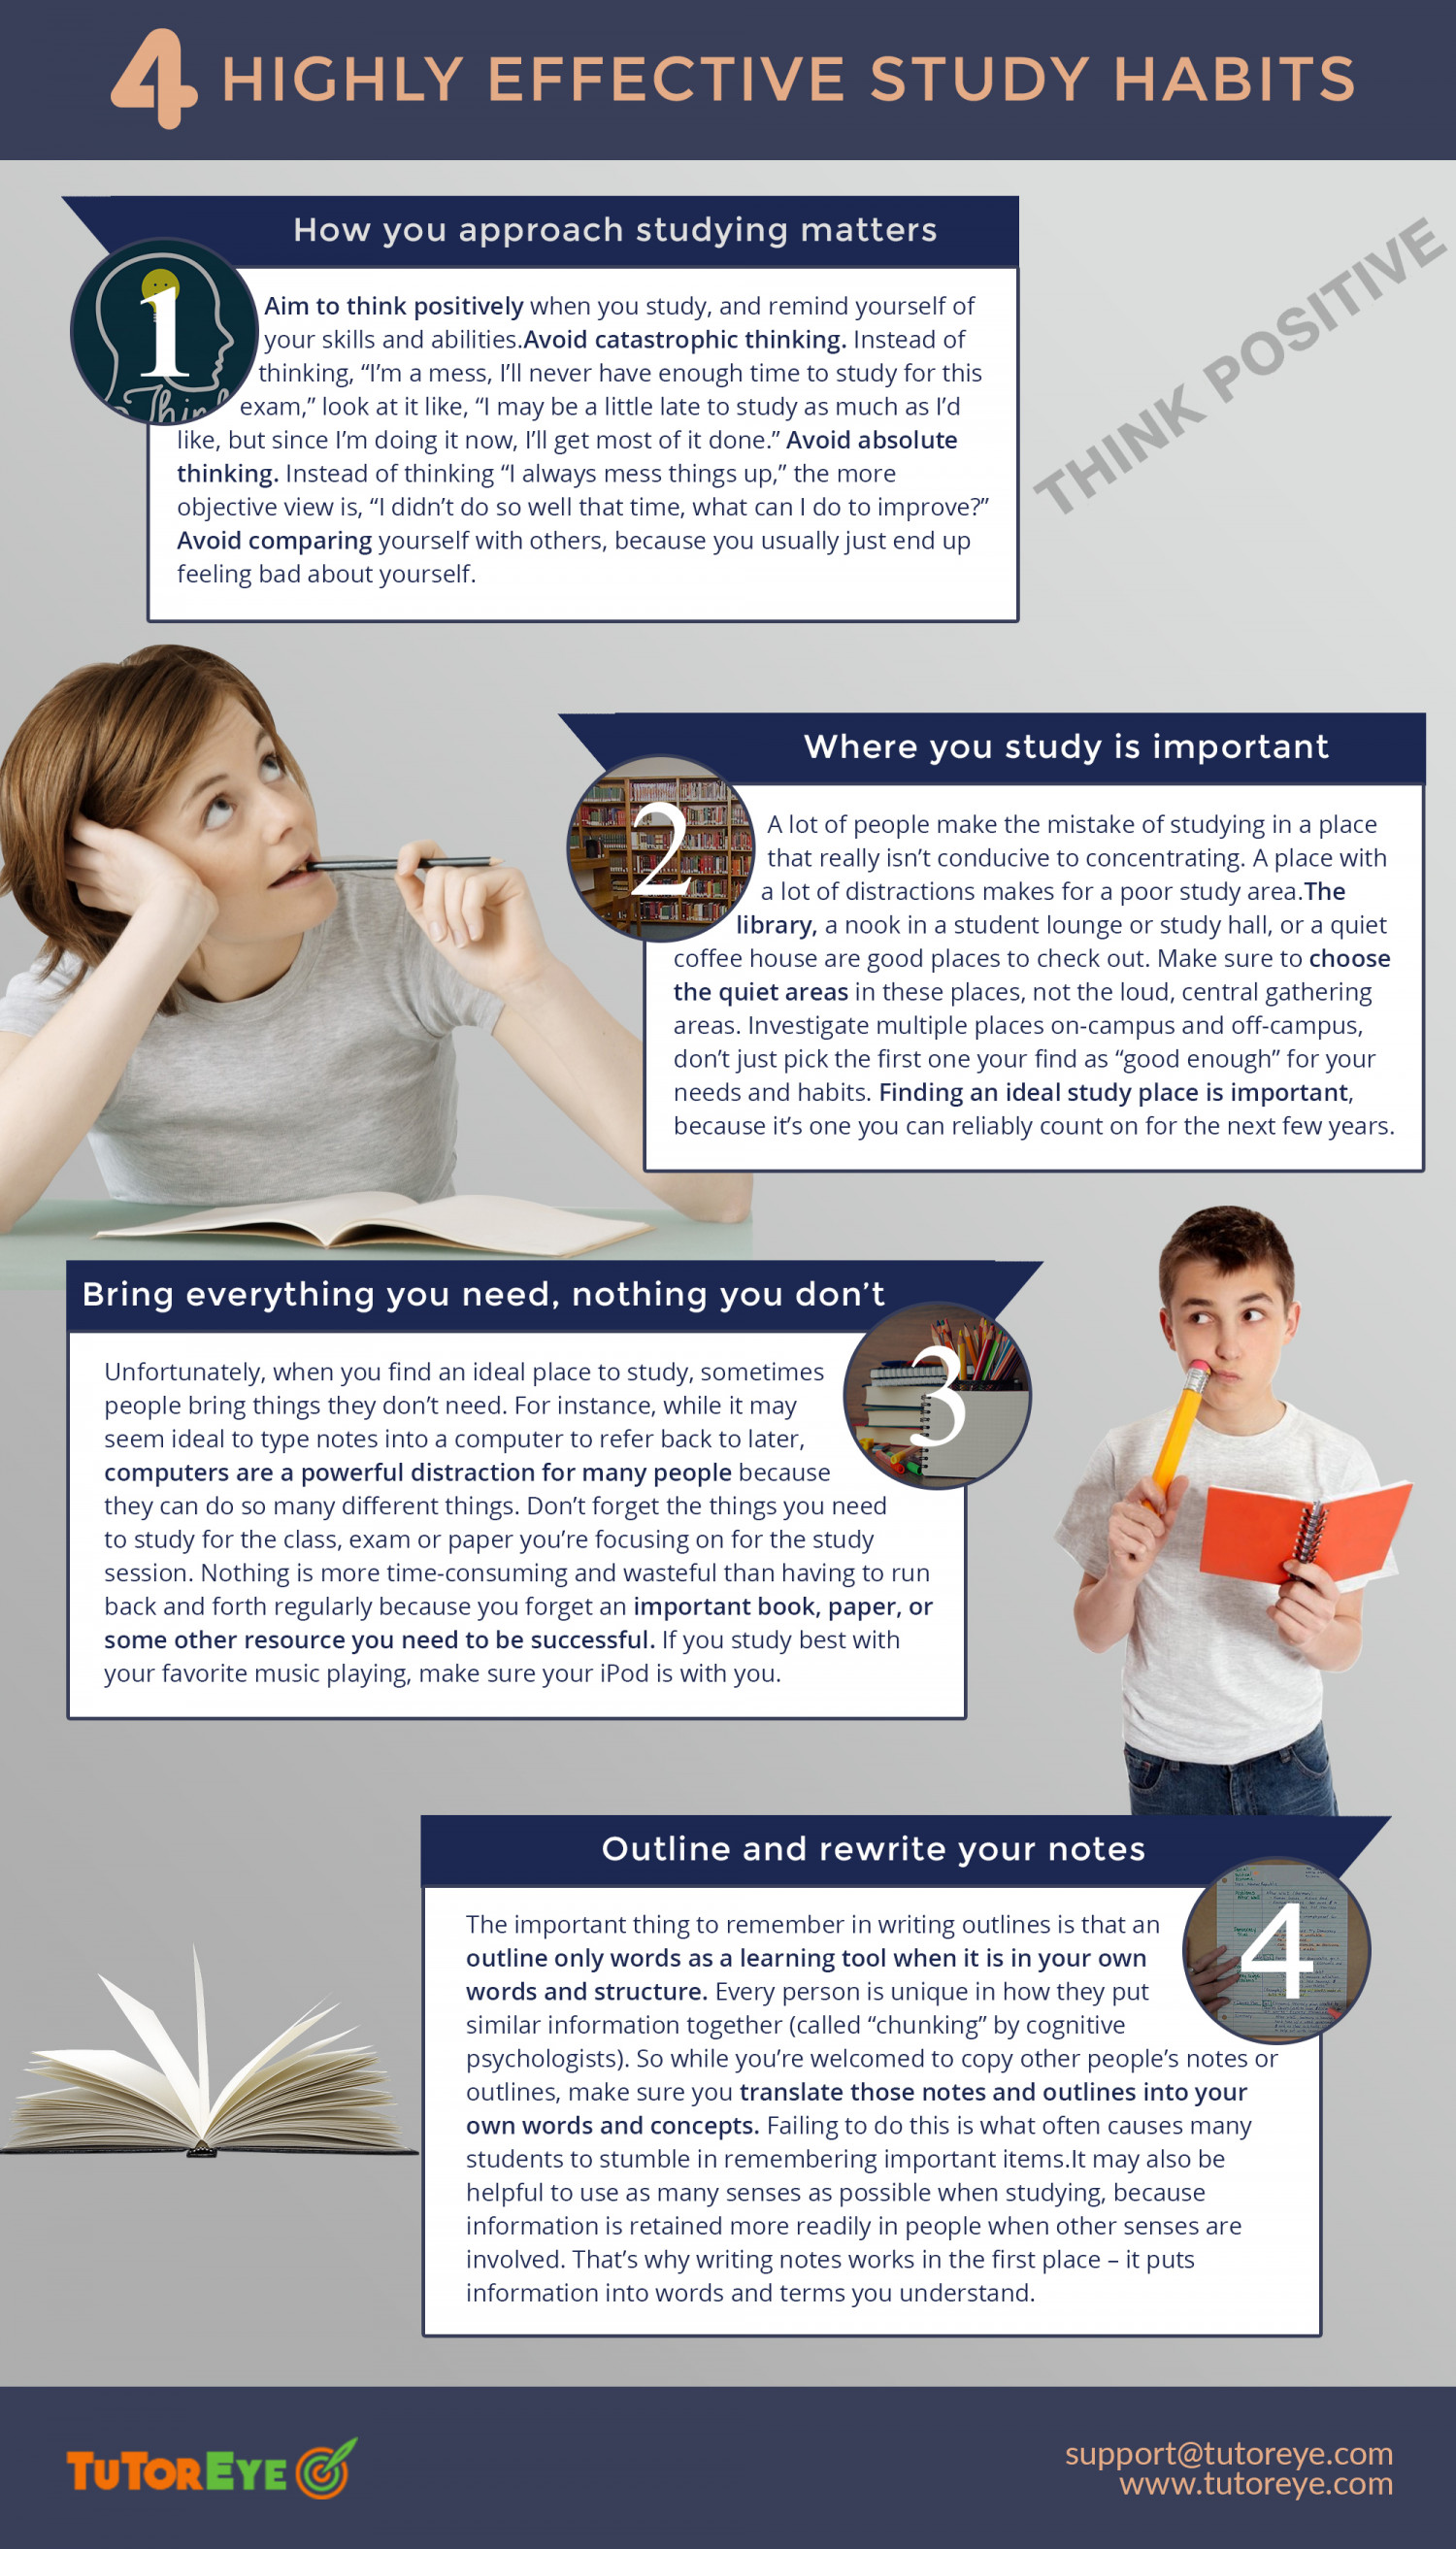 Highly Effective Study Habits Infographic